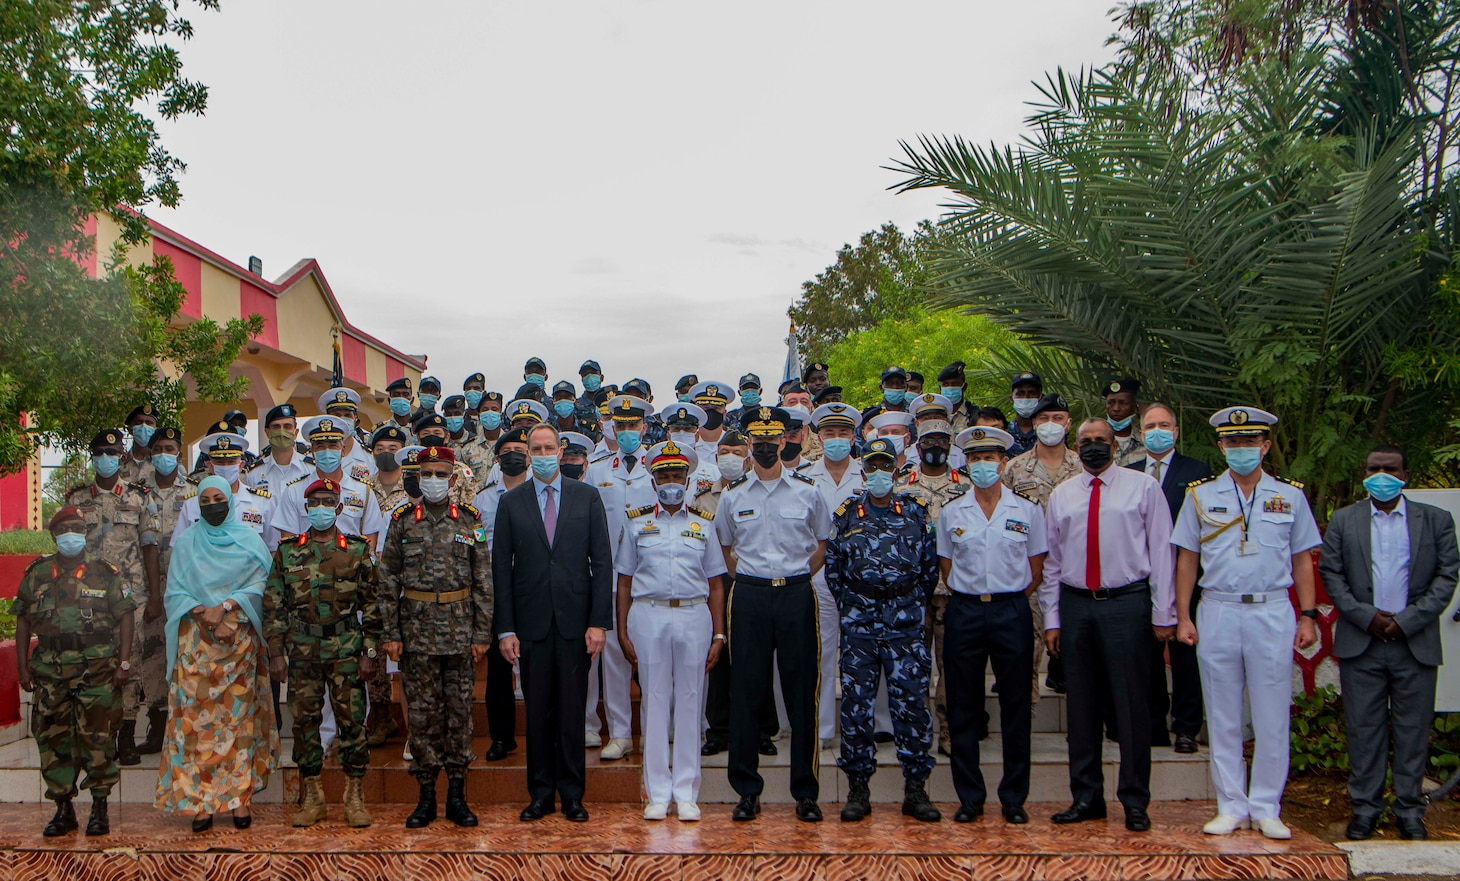 (July 25, 2021) Djiboutian and joint partner leadership pose for a group photo after the opening ceremony of exercise Cutlass Express 2021 held at the Doraleh Coast Guard training center in Djibouti, Djibouti, July 25, 2021. Cutlass Express is designed to improve regional cooperation, maritime domain awareness and information sharing practices to increase capabilities between the U.S., East African and Western Indian Ocean nations to counter illicit maritime activity.